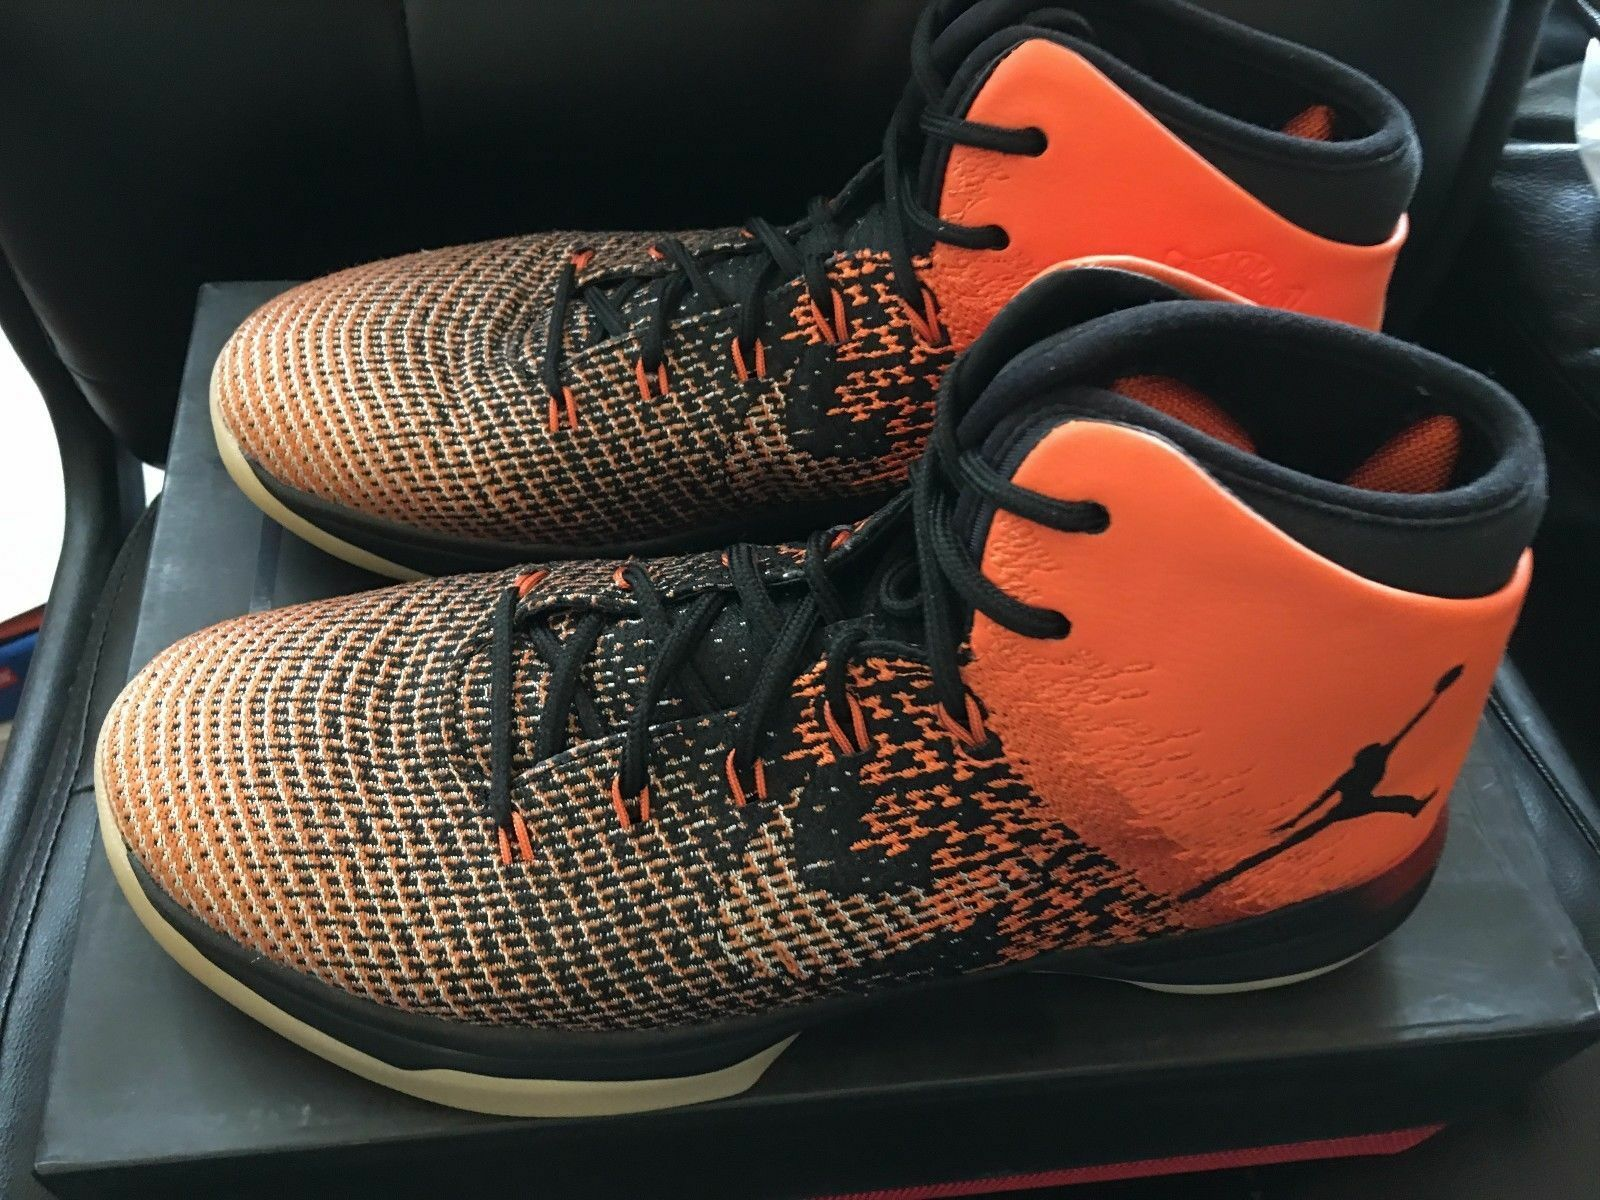 3f0d4f7b08df1 Jordan 31 xxxi shattered backboard Size 10.5 VVVNDS VVVNDS VVVNDS Worn 1  time for 15 minutes ...